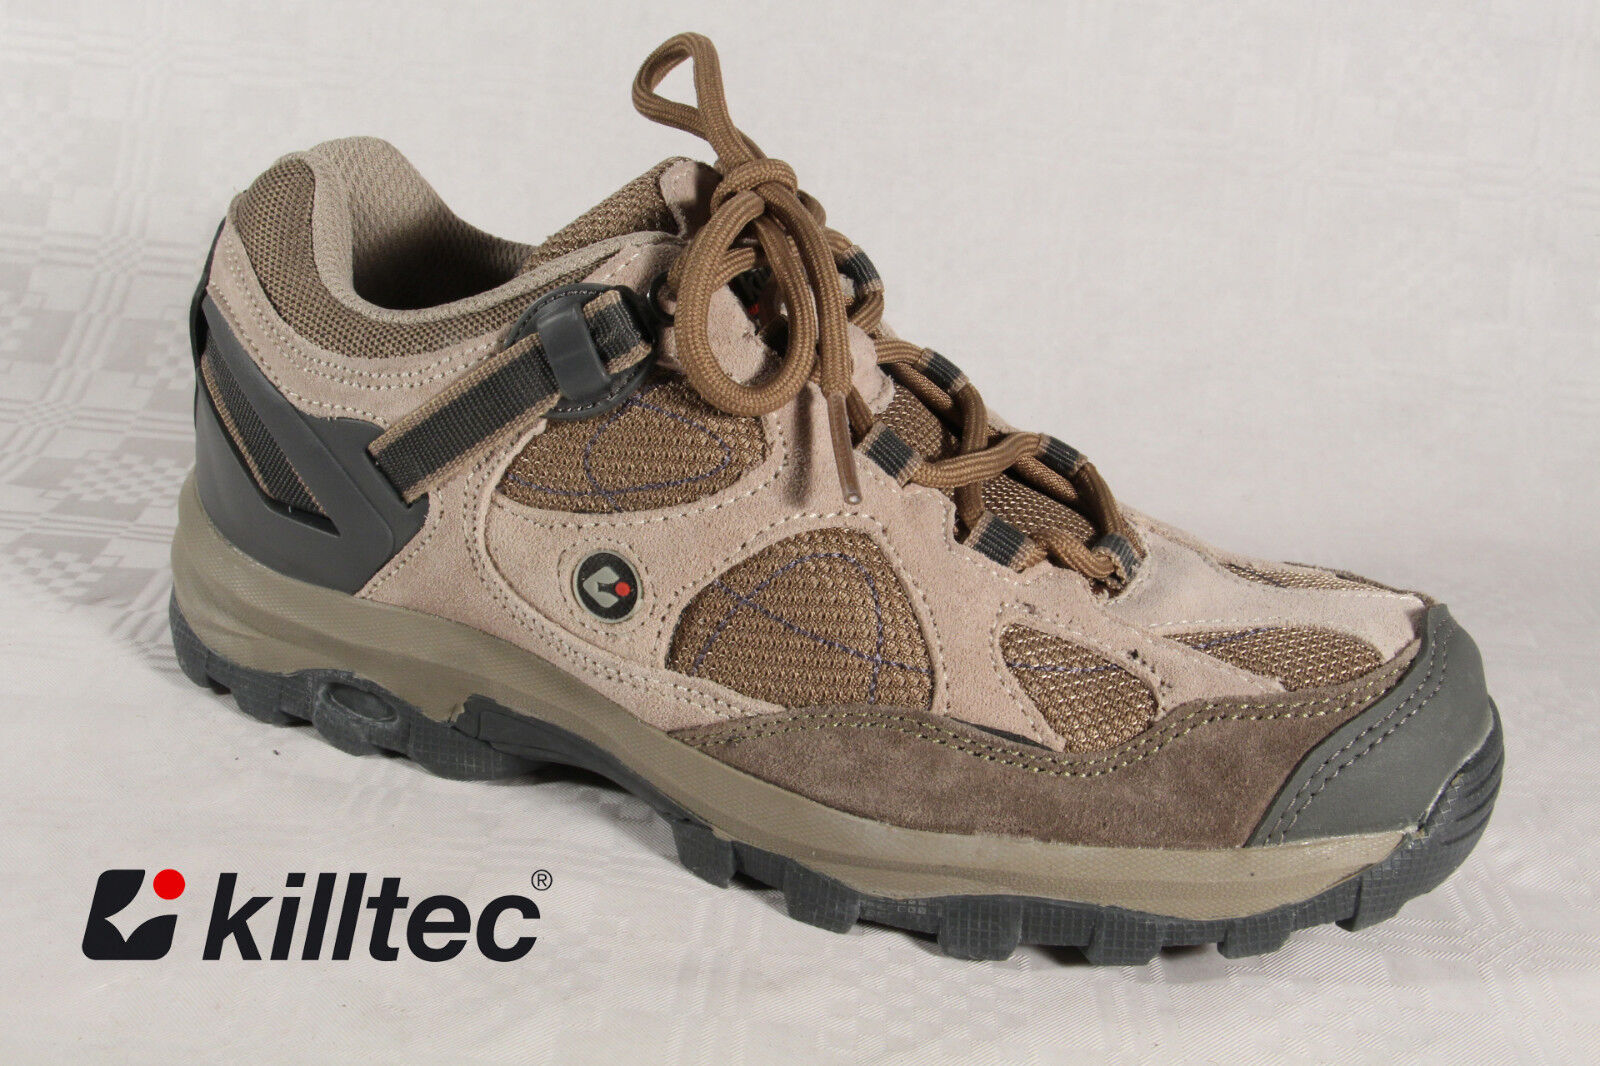 KILLTEC LADIES LACE-UP SHOES TRAINERS BEIGE NEW